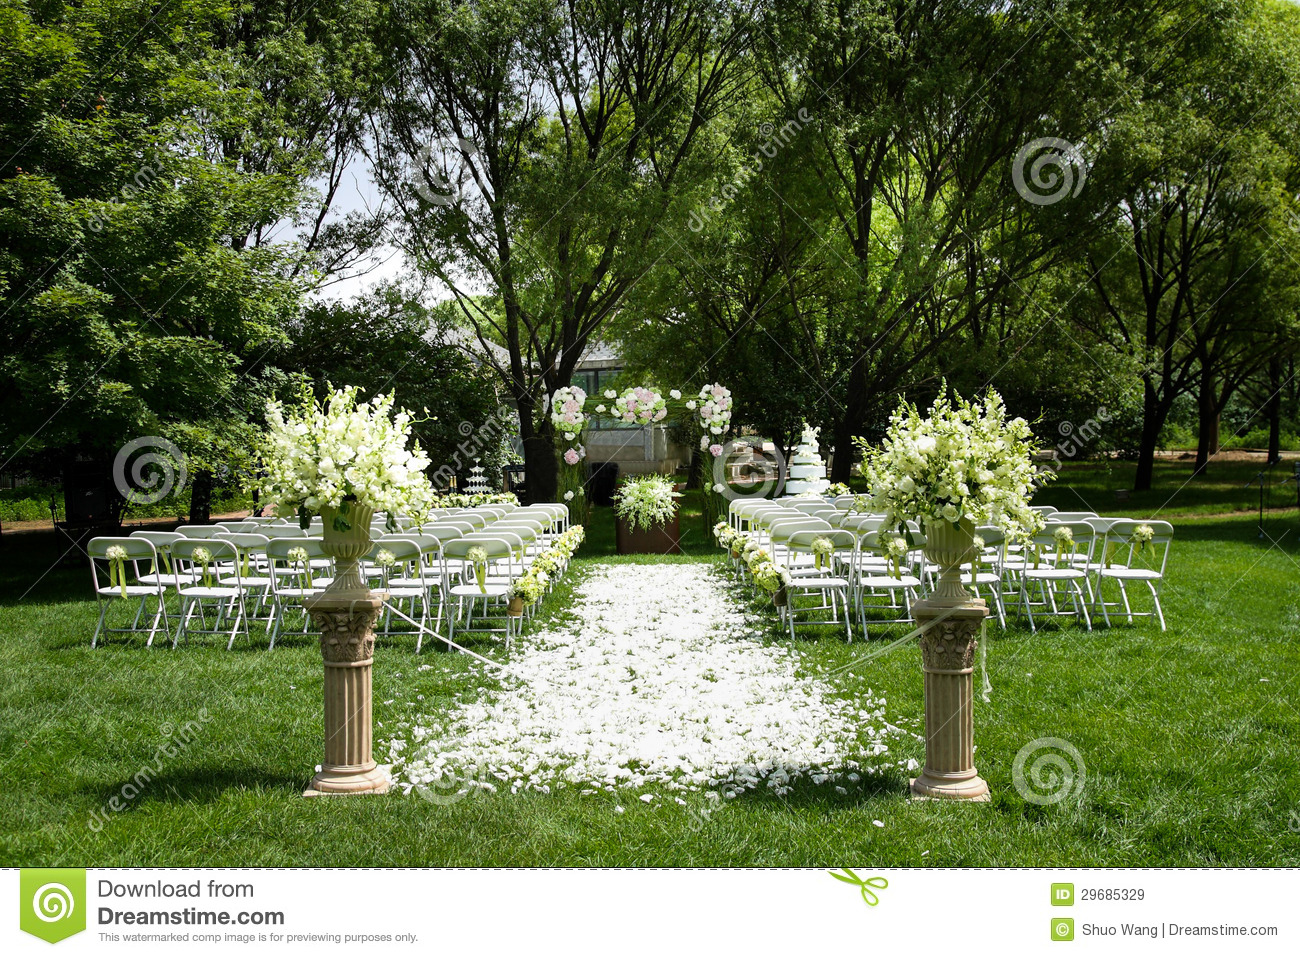 Outdoor Wedding Scene Royalty Free Stock Images - Image: 29685329